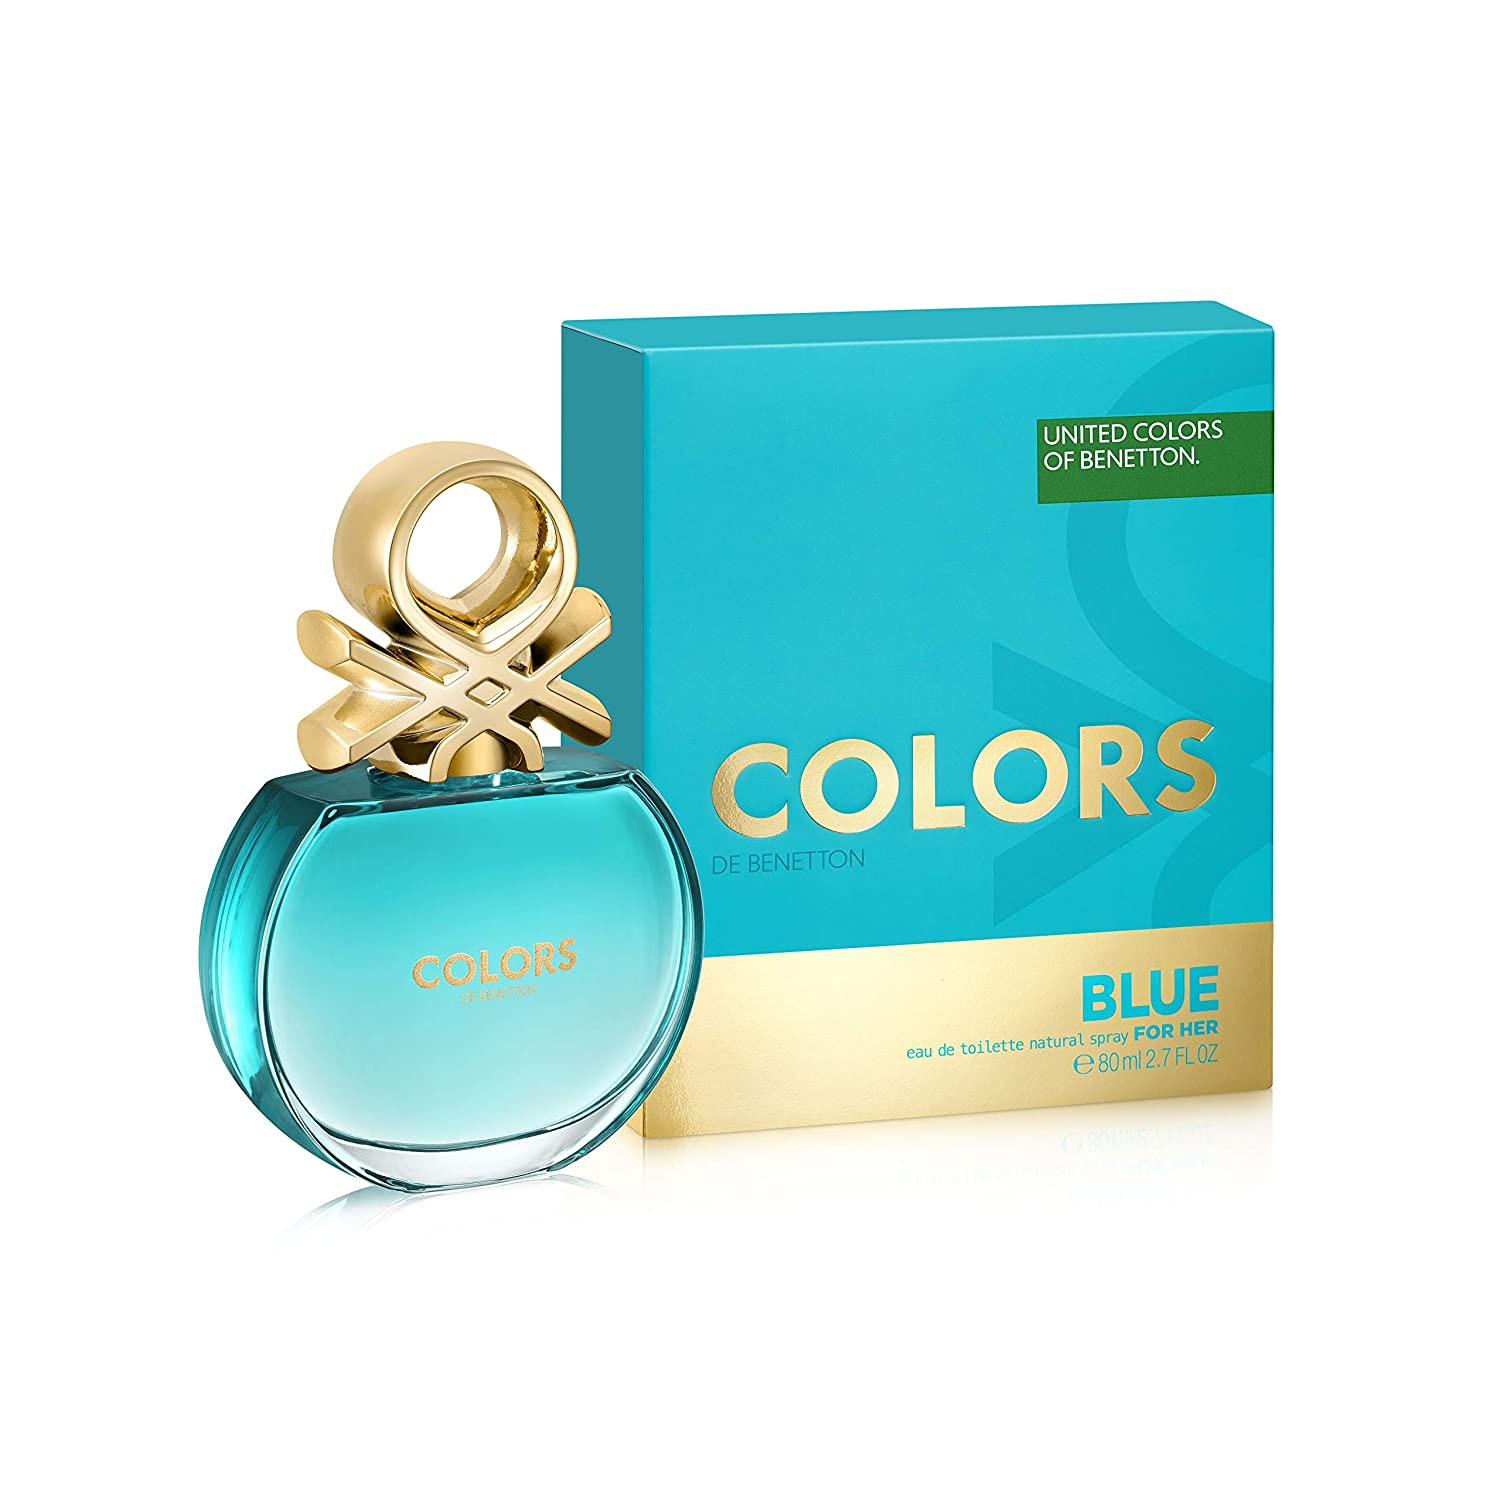 Benetton Colors de Benetton Blue Eau de Toilette 80ml Spray: Amazon.es: Belleza